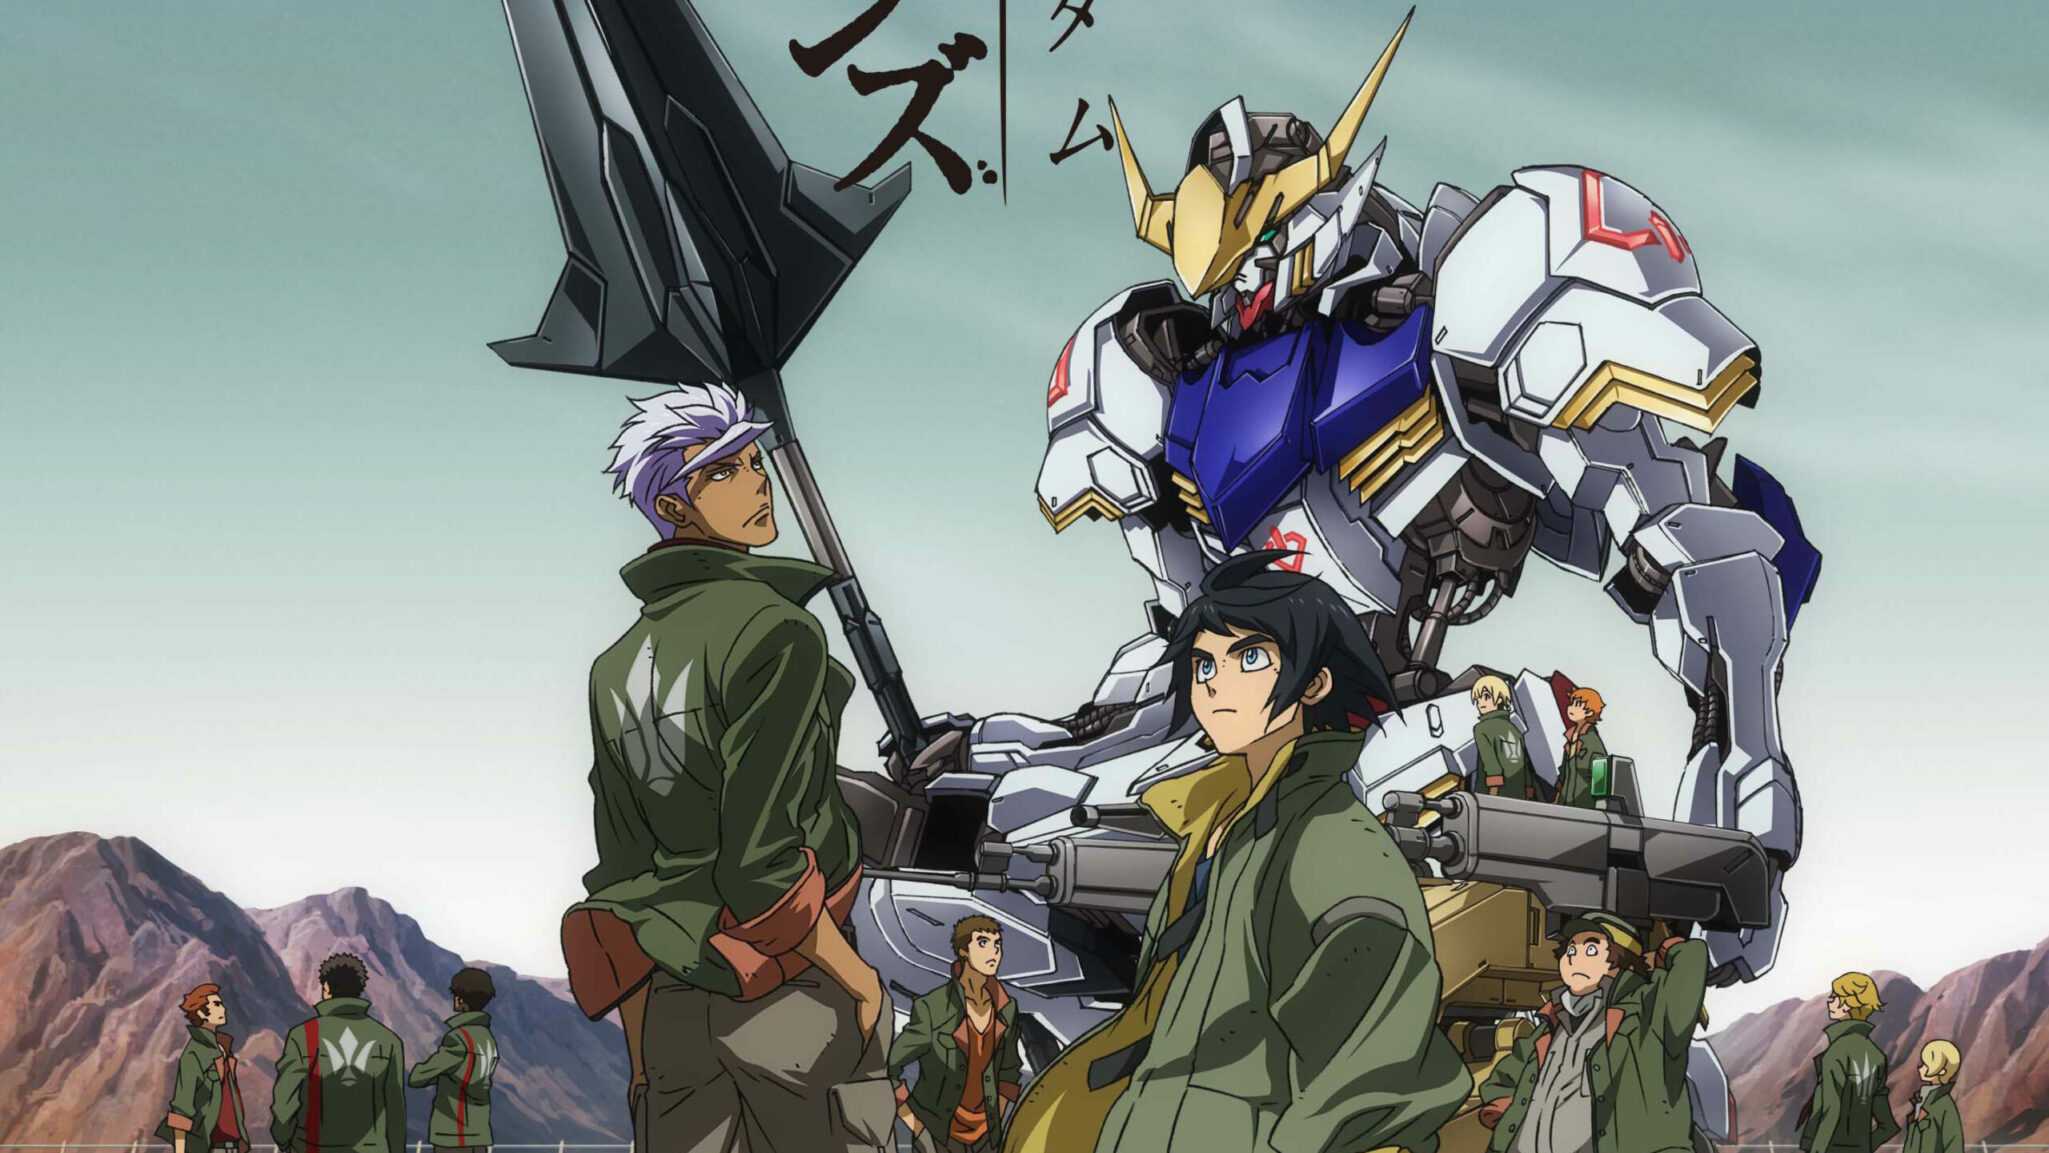 Best Anime on Hulu - Mobile Suit Gundam: Iron-Blooded Orphans